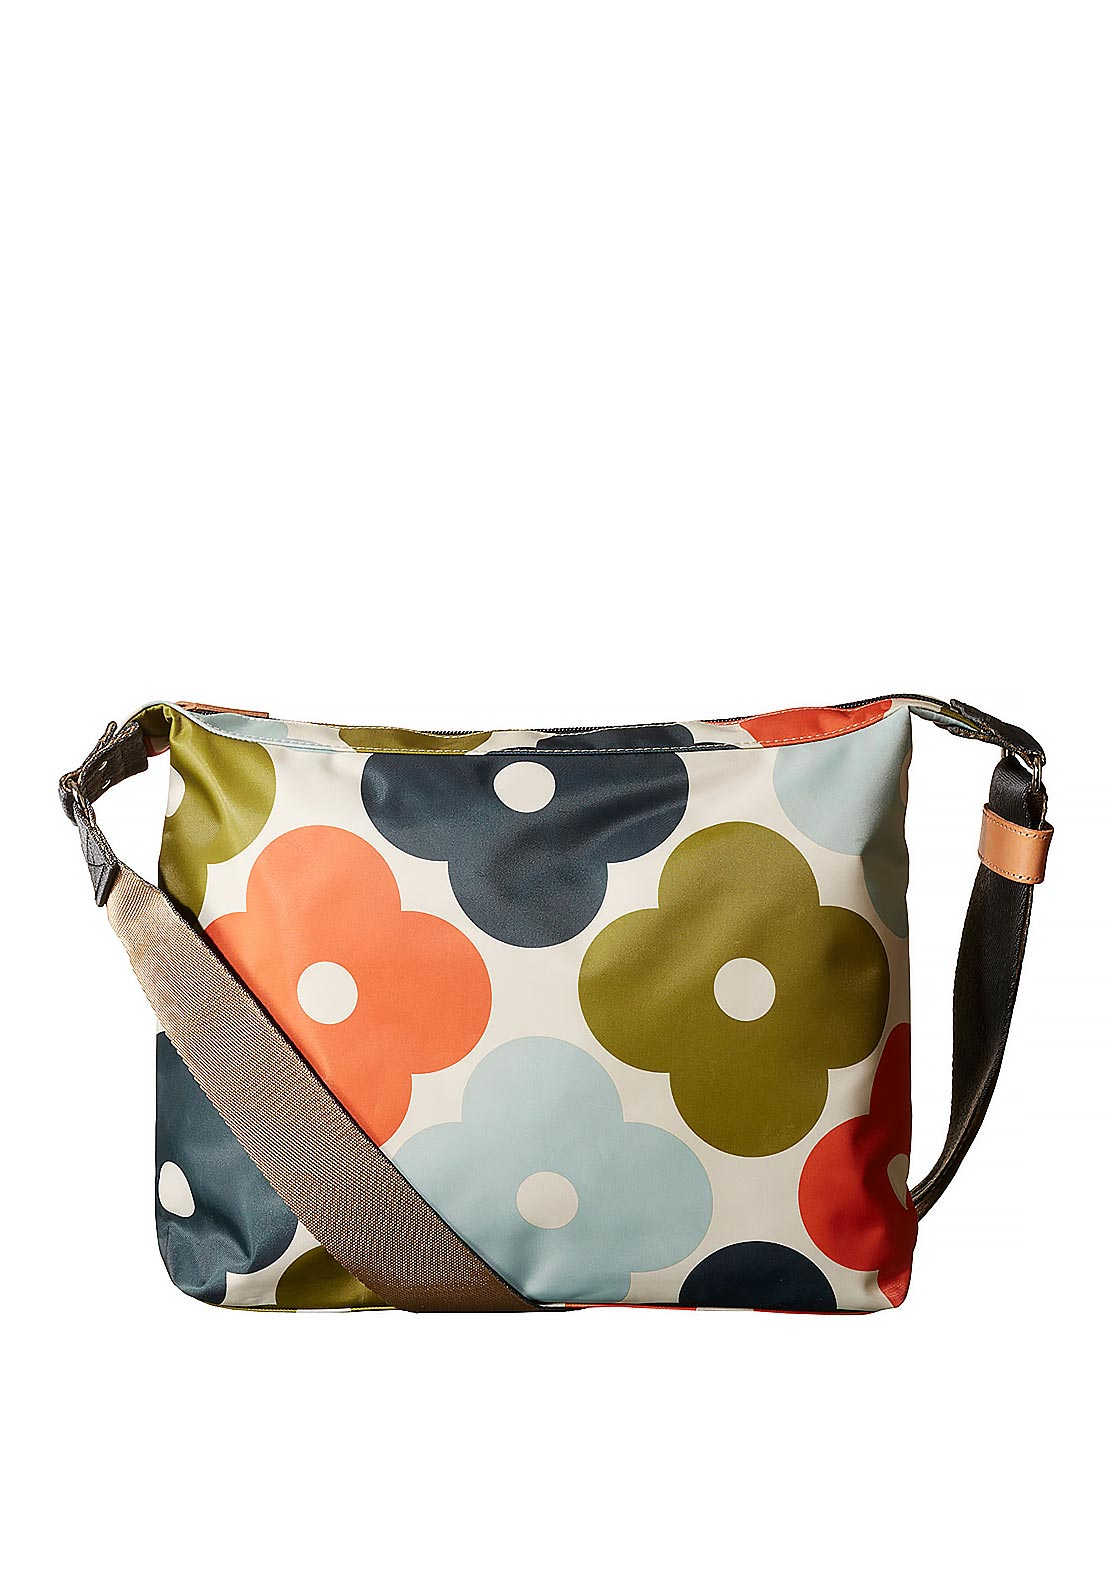 Orla Kiely Giant Flower Spot Print Large Cross Body Bag, Multi-Coloured